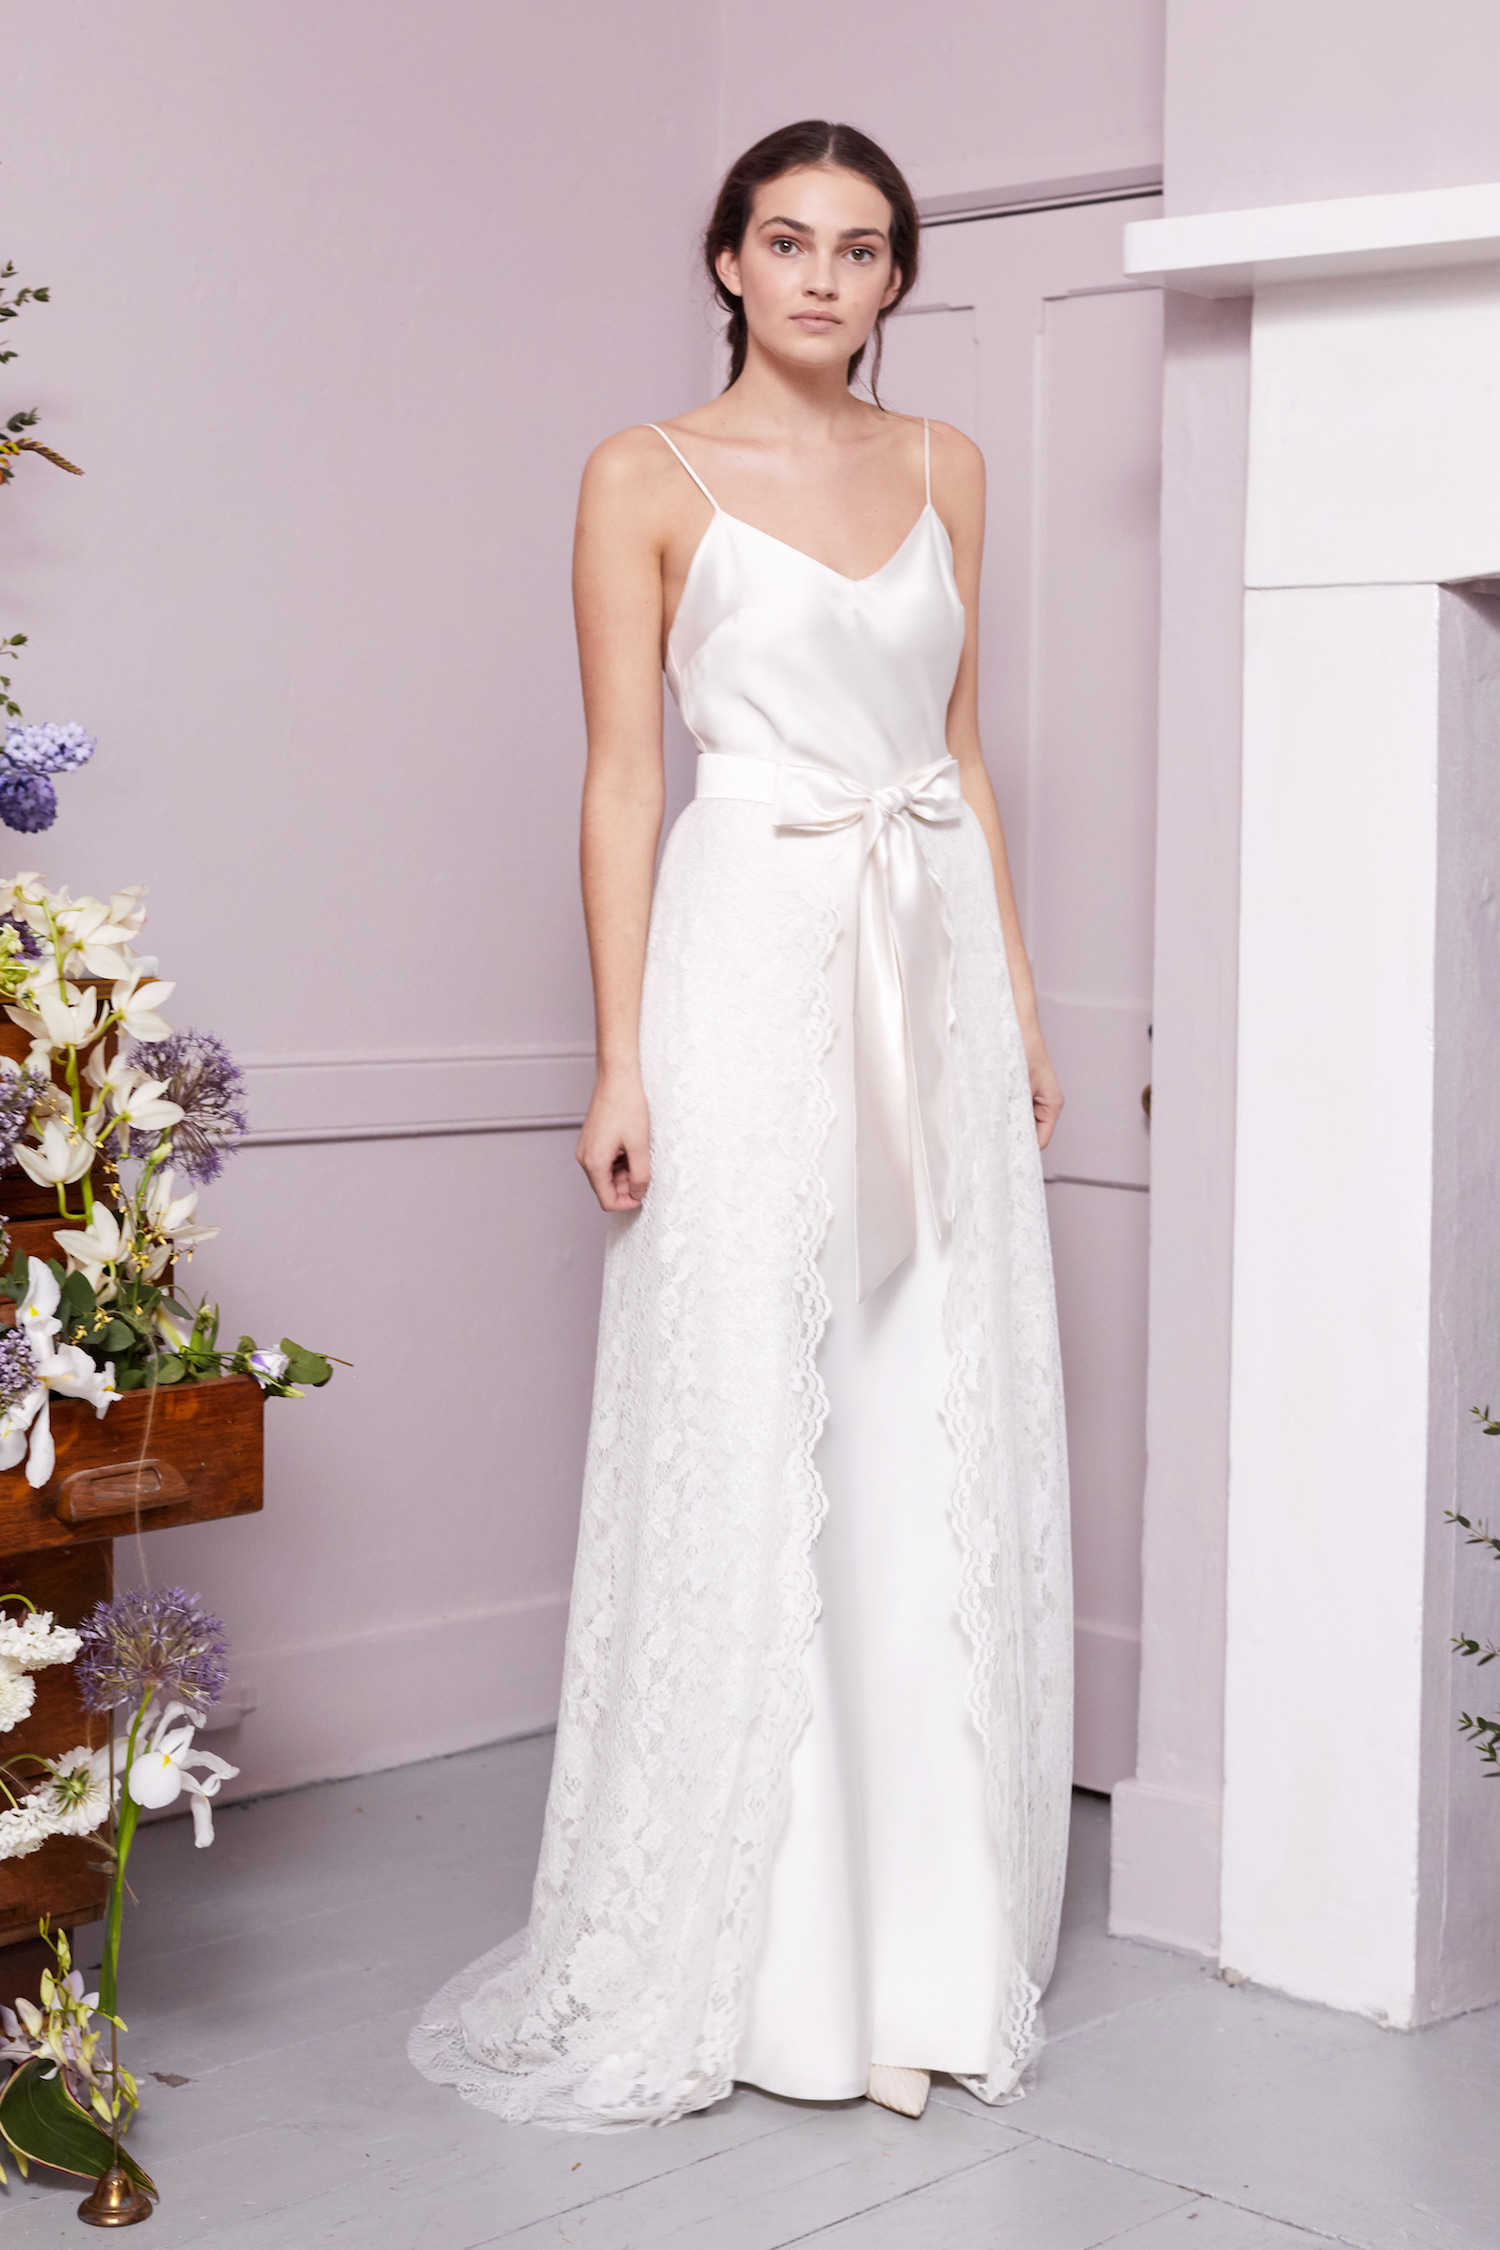 PENROSE SKIRT & IRIS SLIP | WEDDING DRESS BY HALFPENNY LONDON